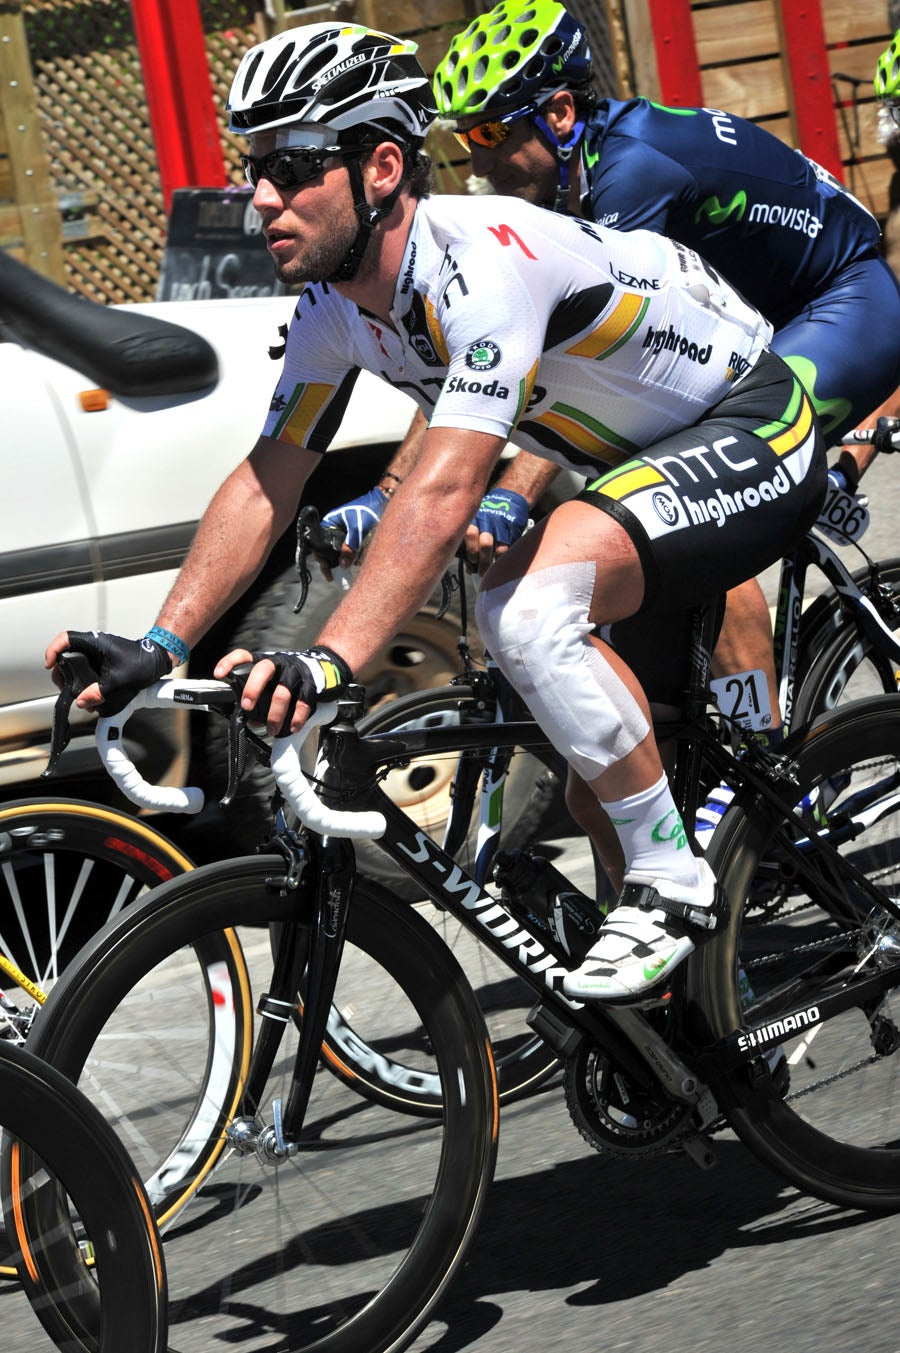 2011 Tour Down Under - Stage 3: Cavendish shows the damage from his crash on Stage 2.